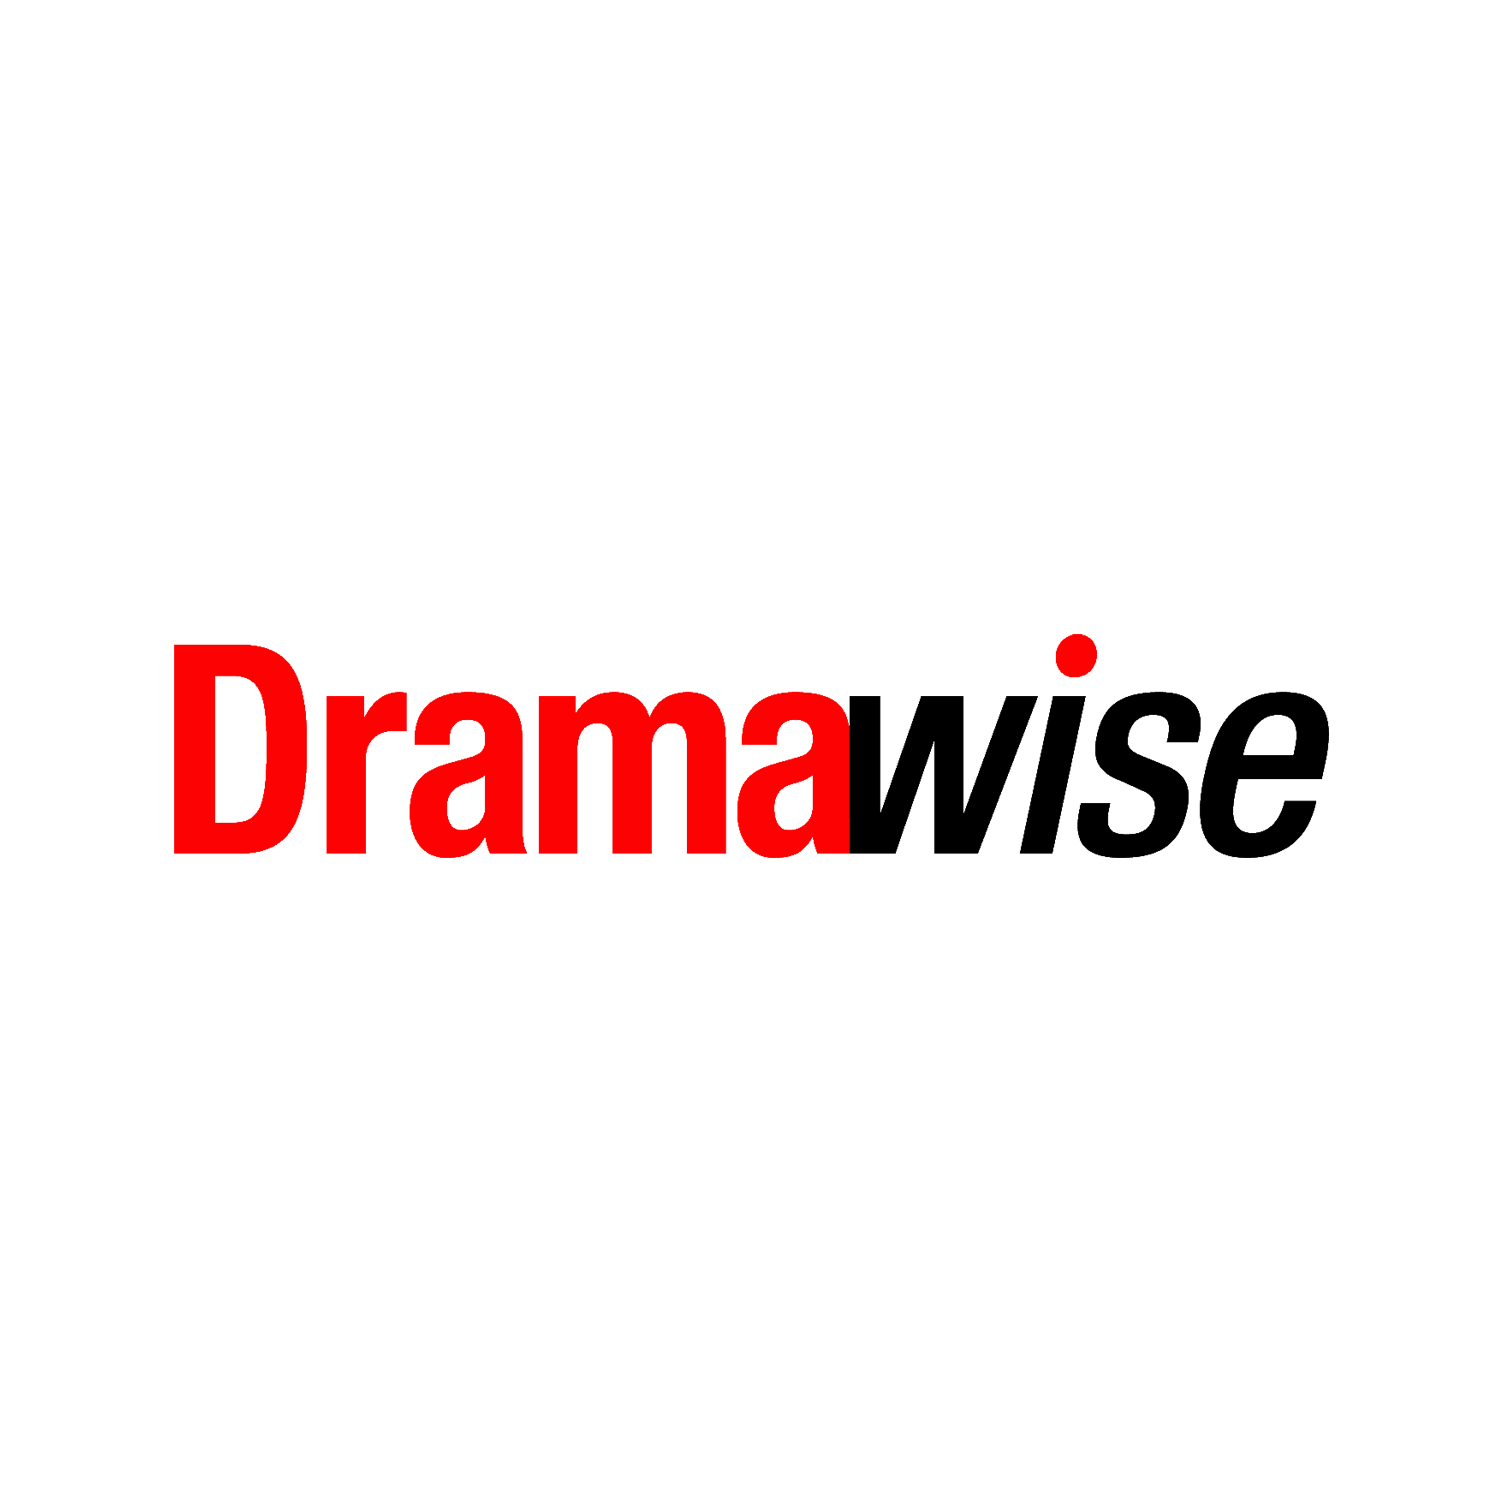 Dramawise: The Belle of Amherst Virtual Discussion